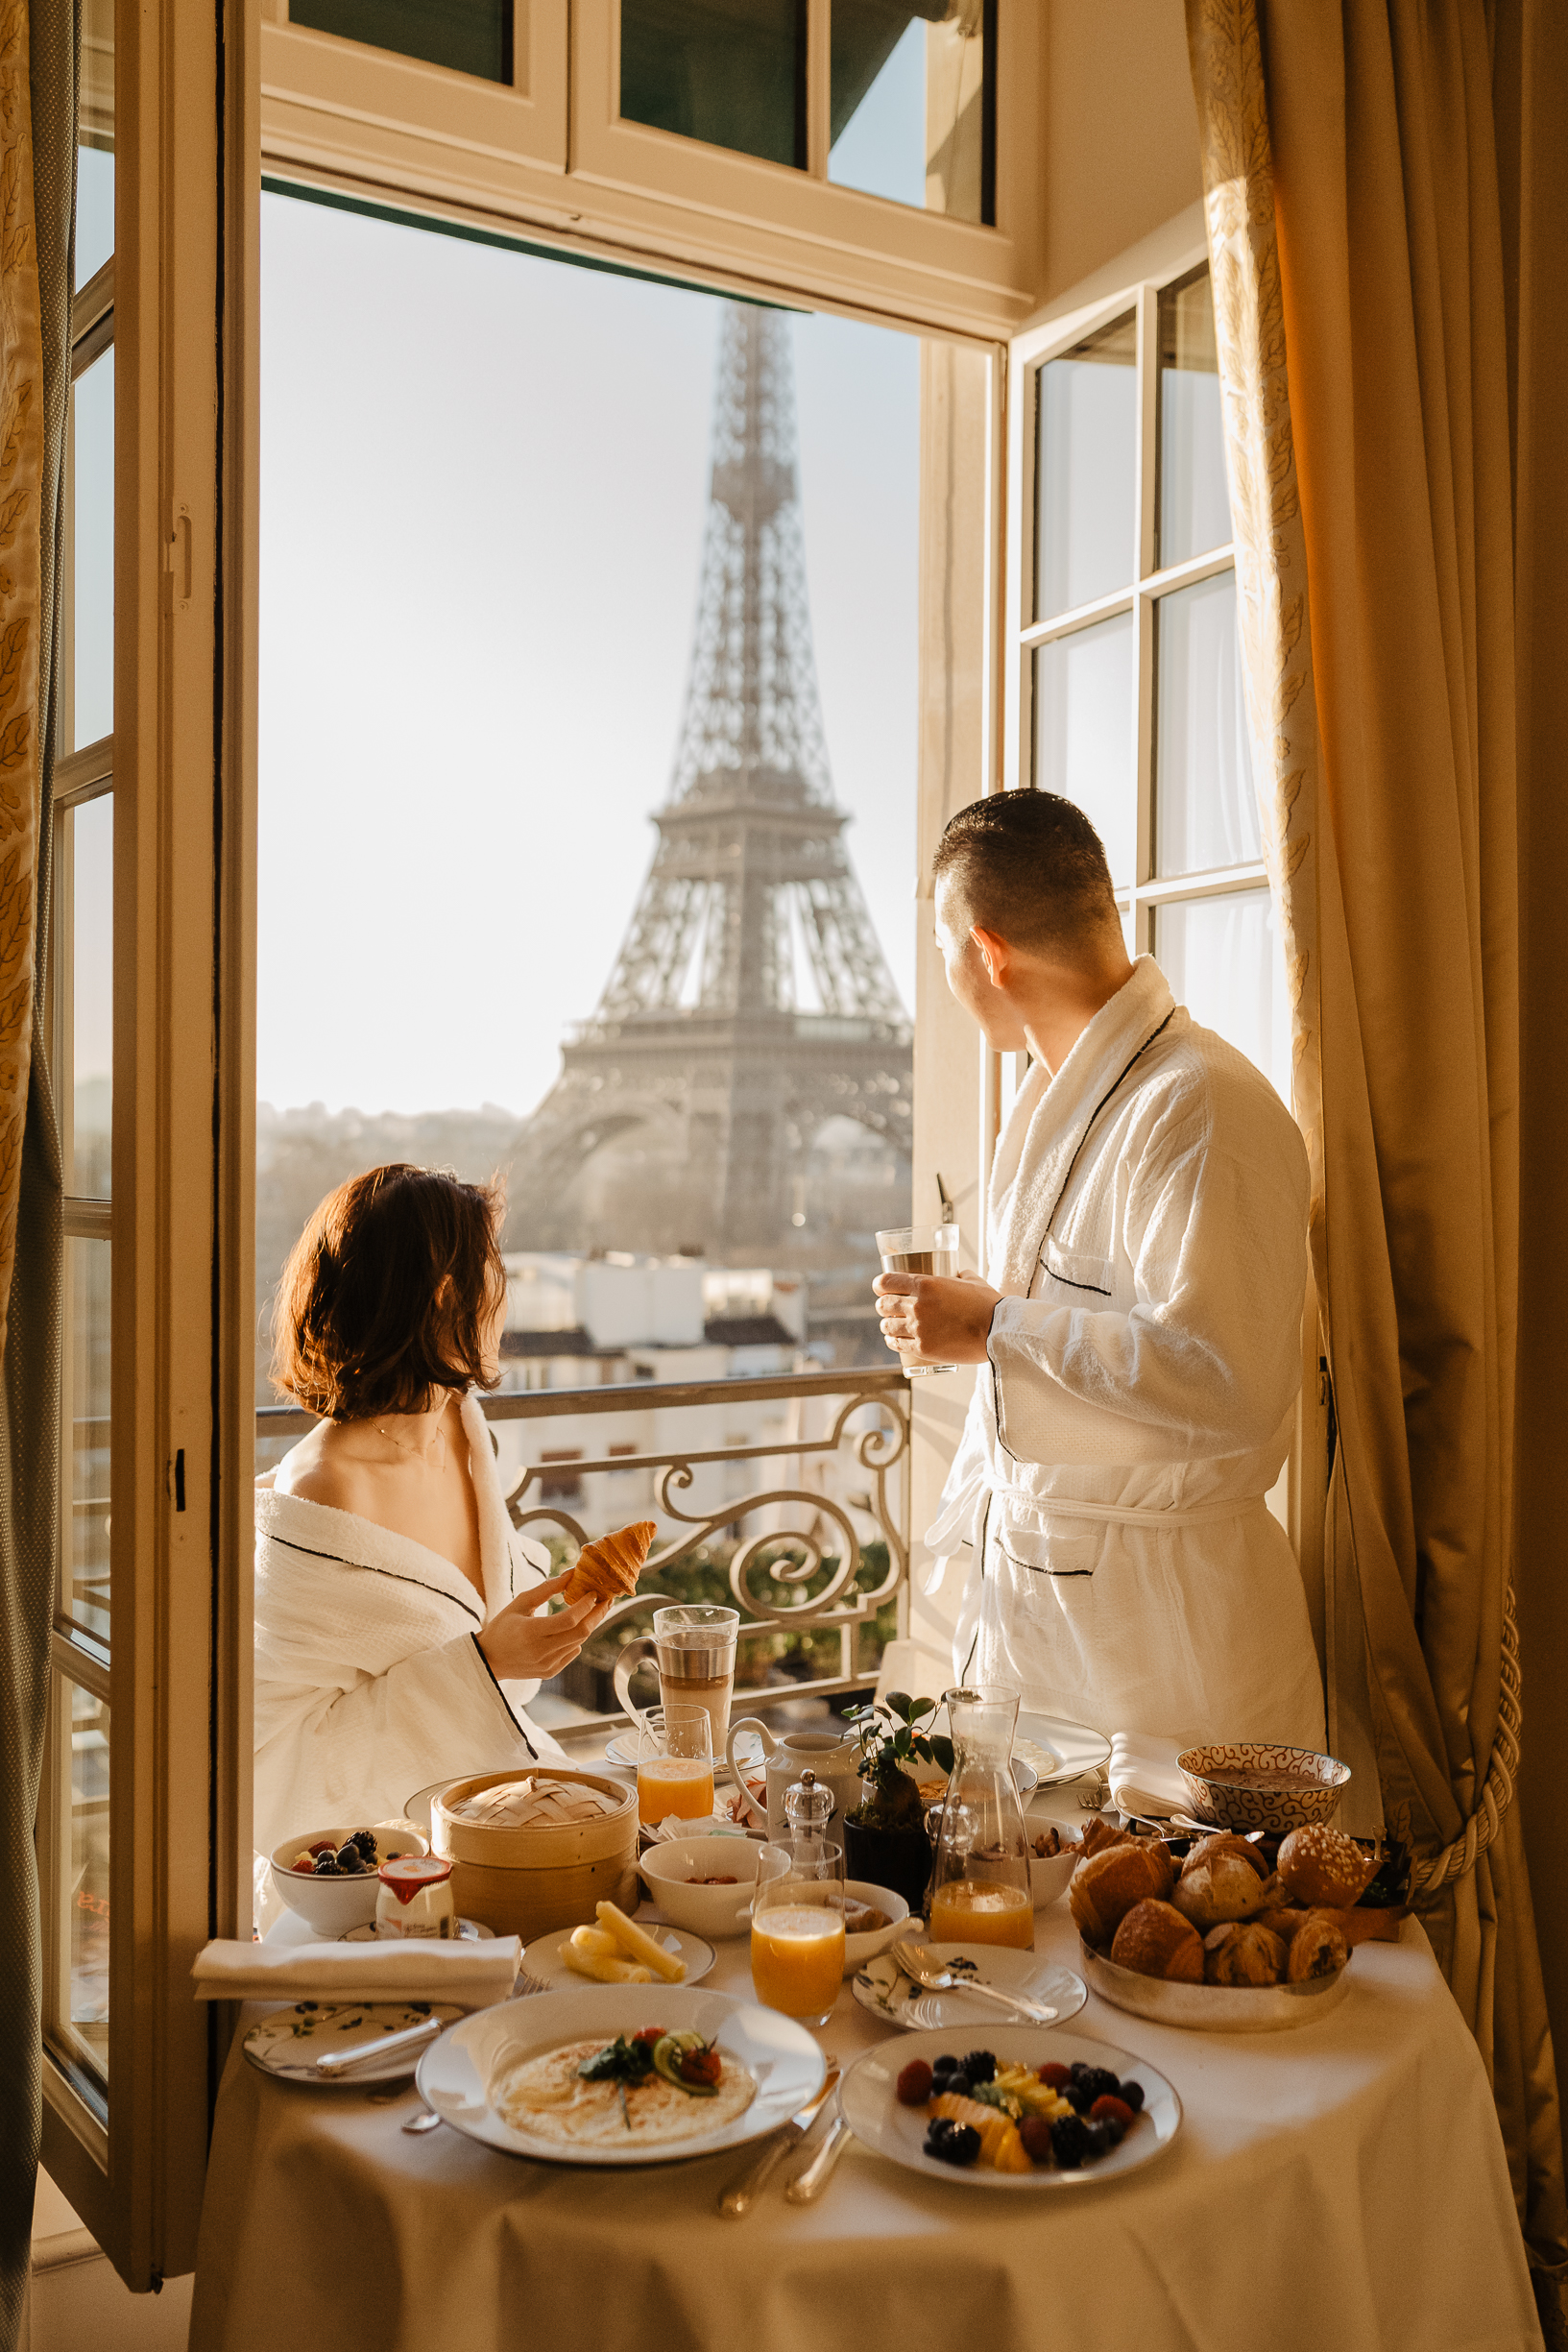 Breakfast wedding at Shangri la Paris with Eiffel tower